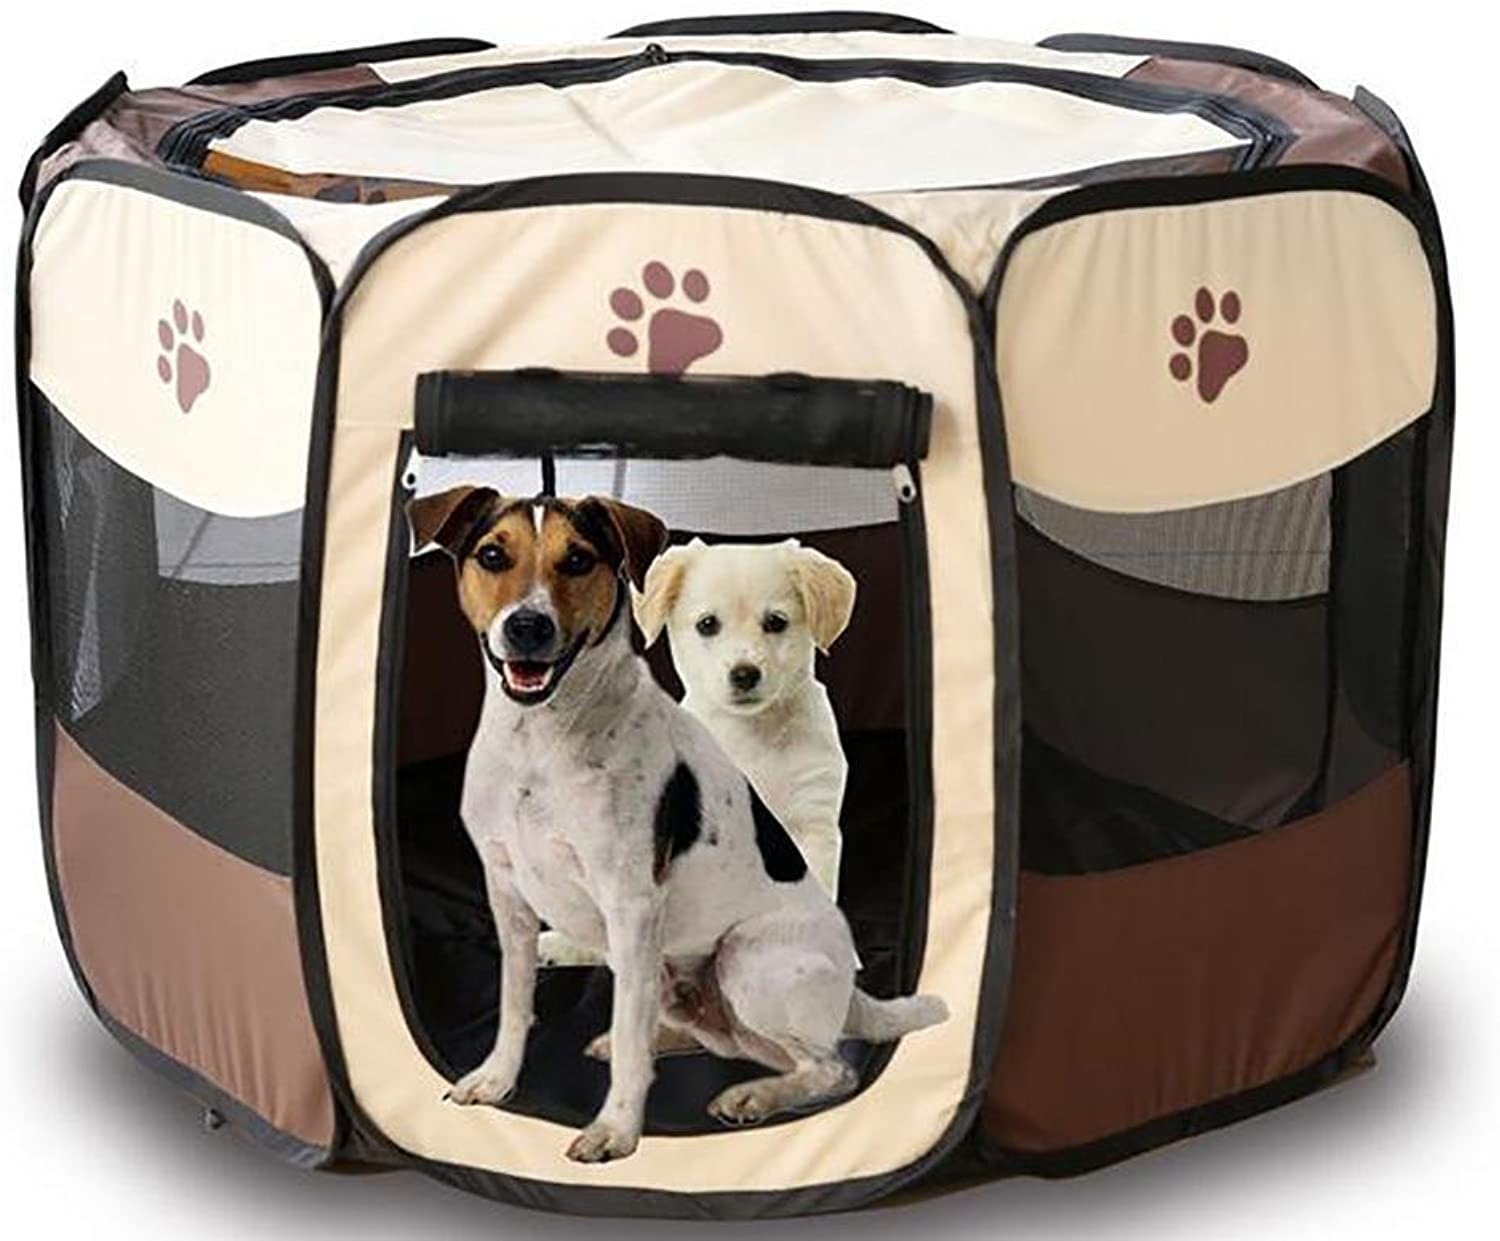 Pet Myyxt Play Pen Portable Foldable Puppy Fences Tent Easy to assemble,Brown